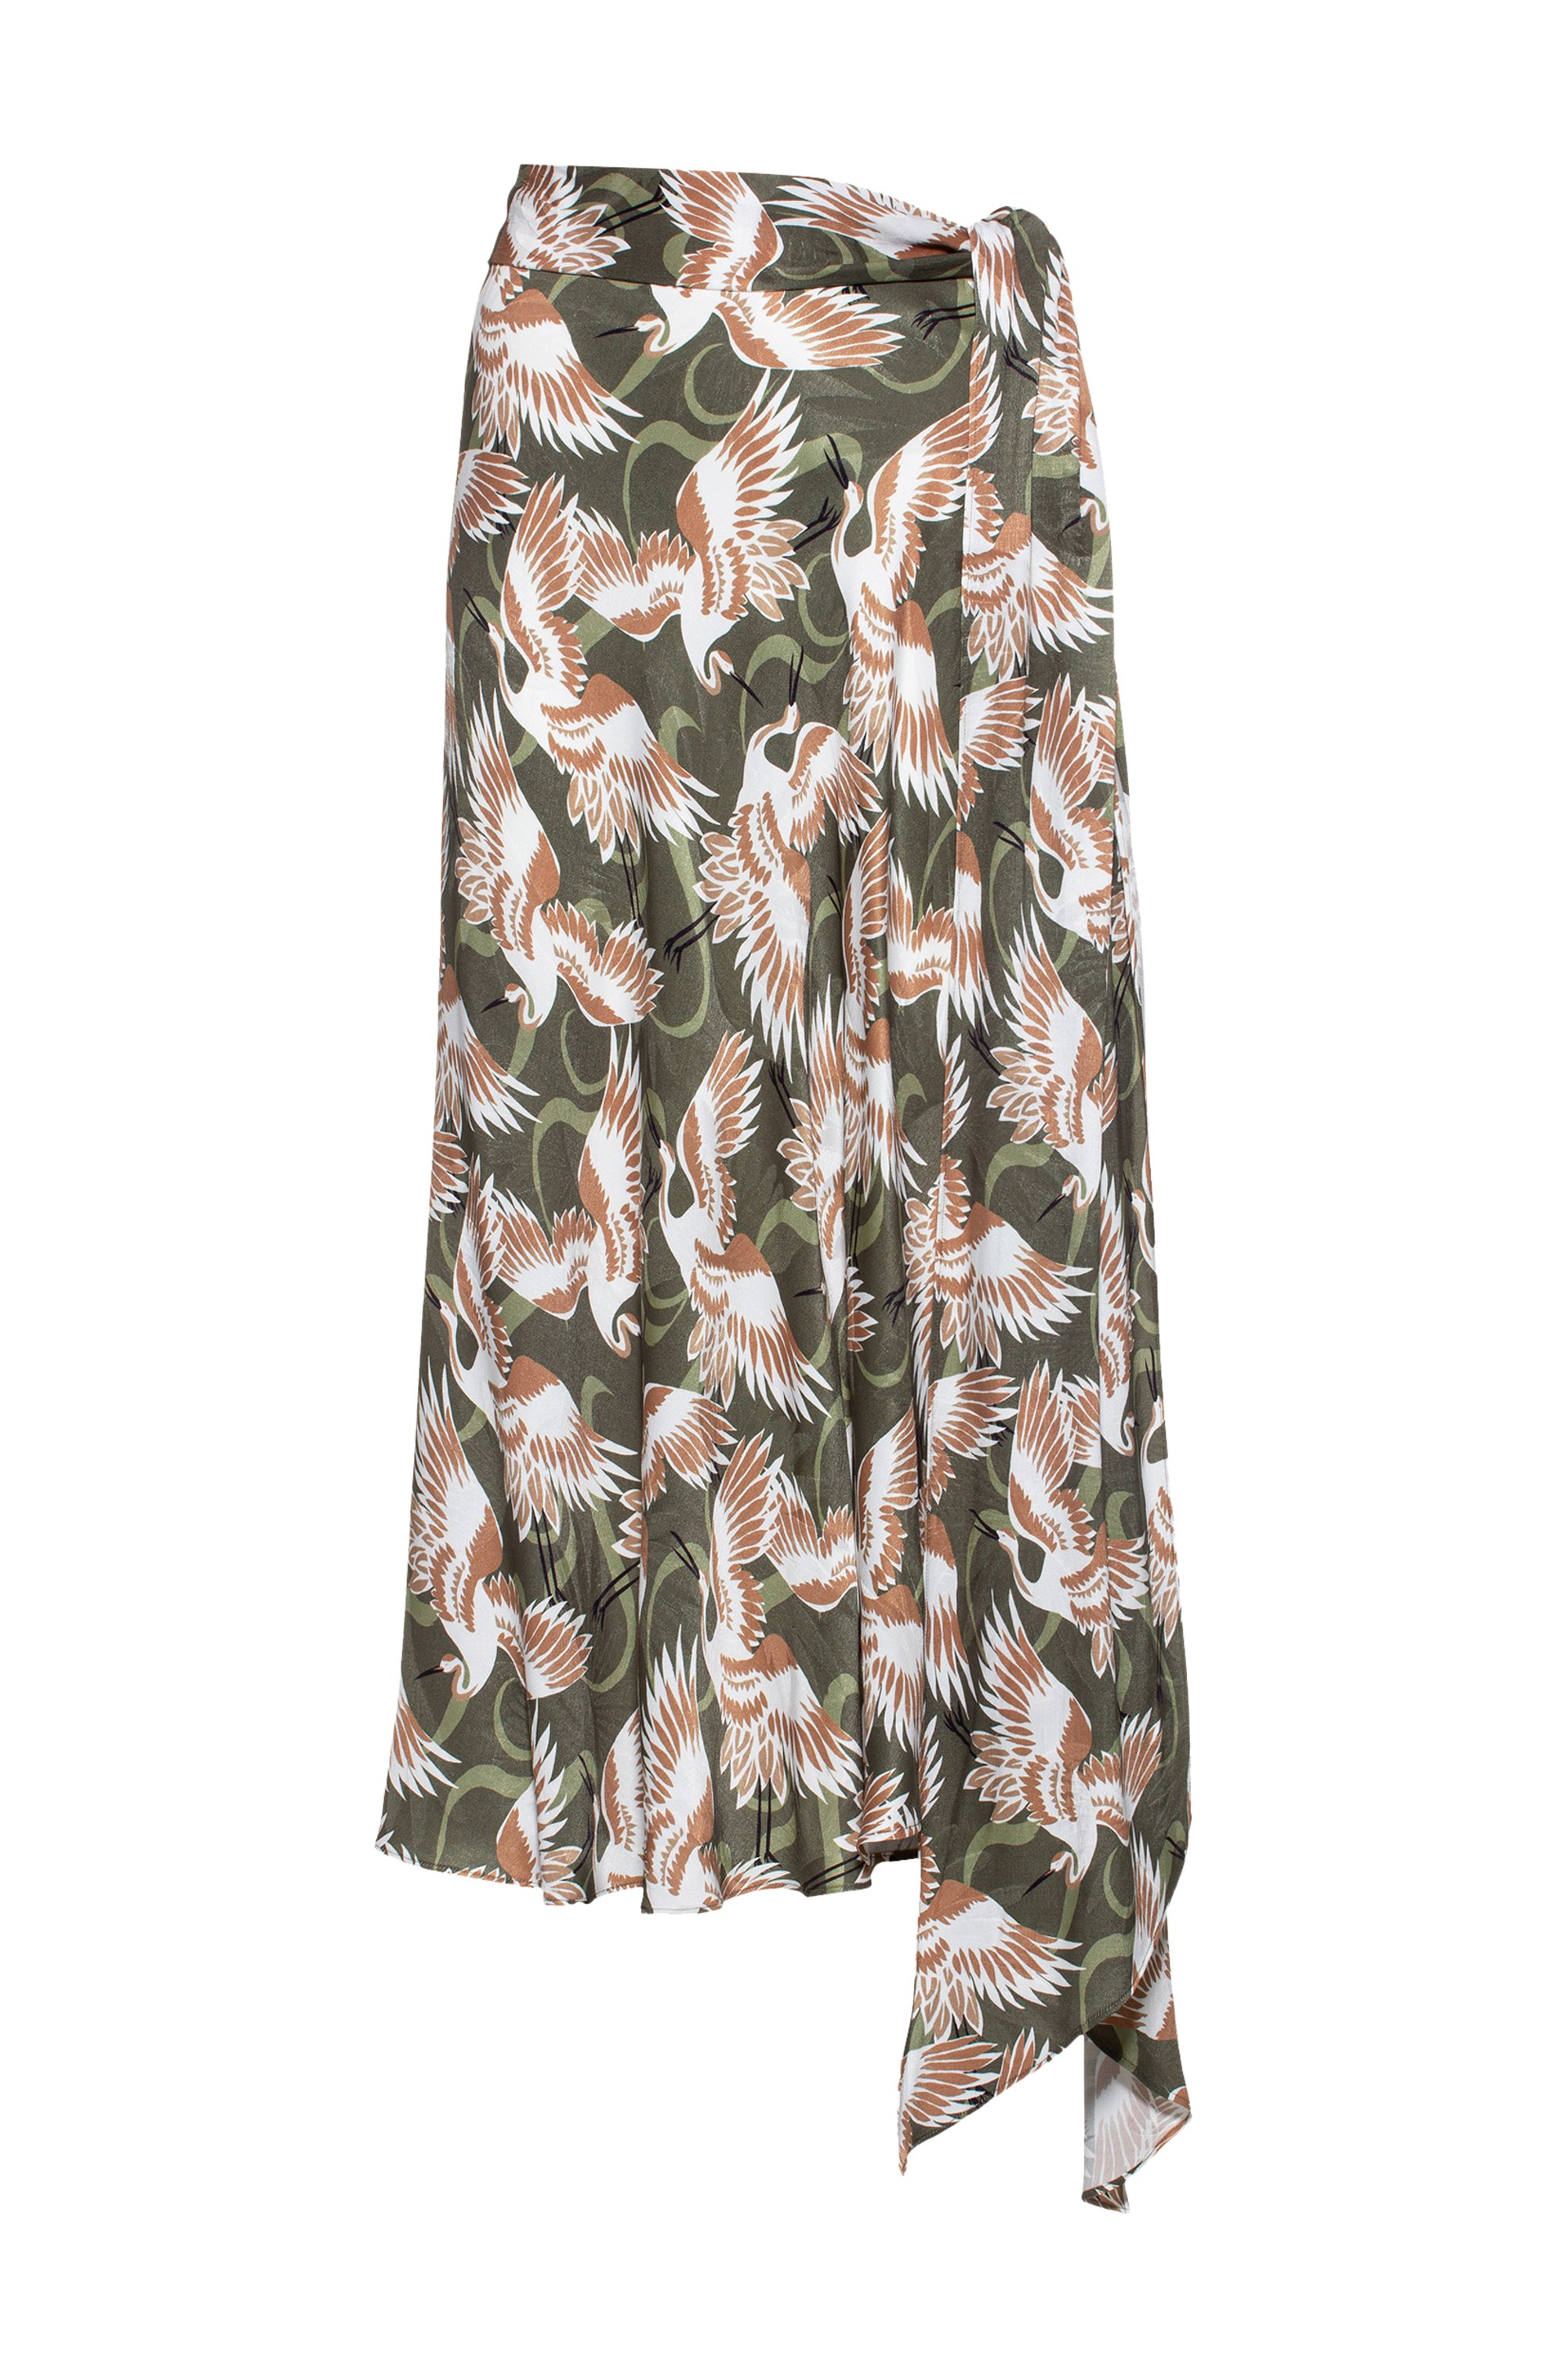 Crane-print wrap skirt with button details, Patterned